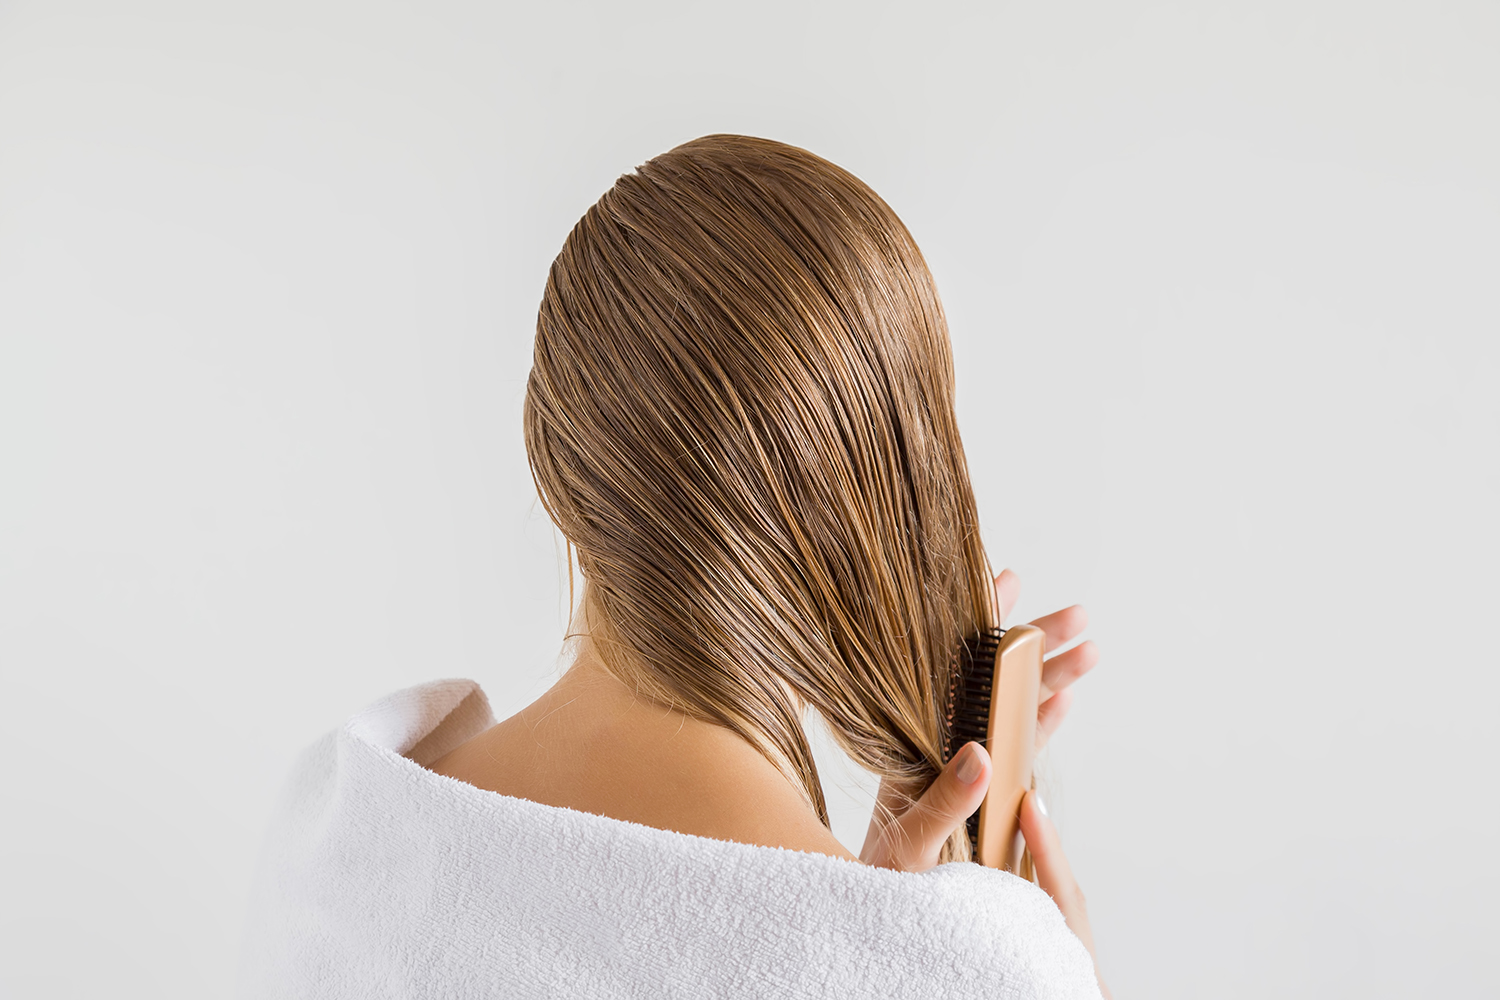 Dry Scalp and Dandruff Remedies at Every Price